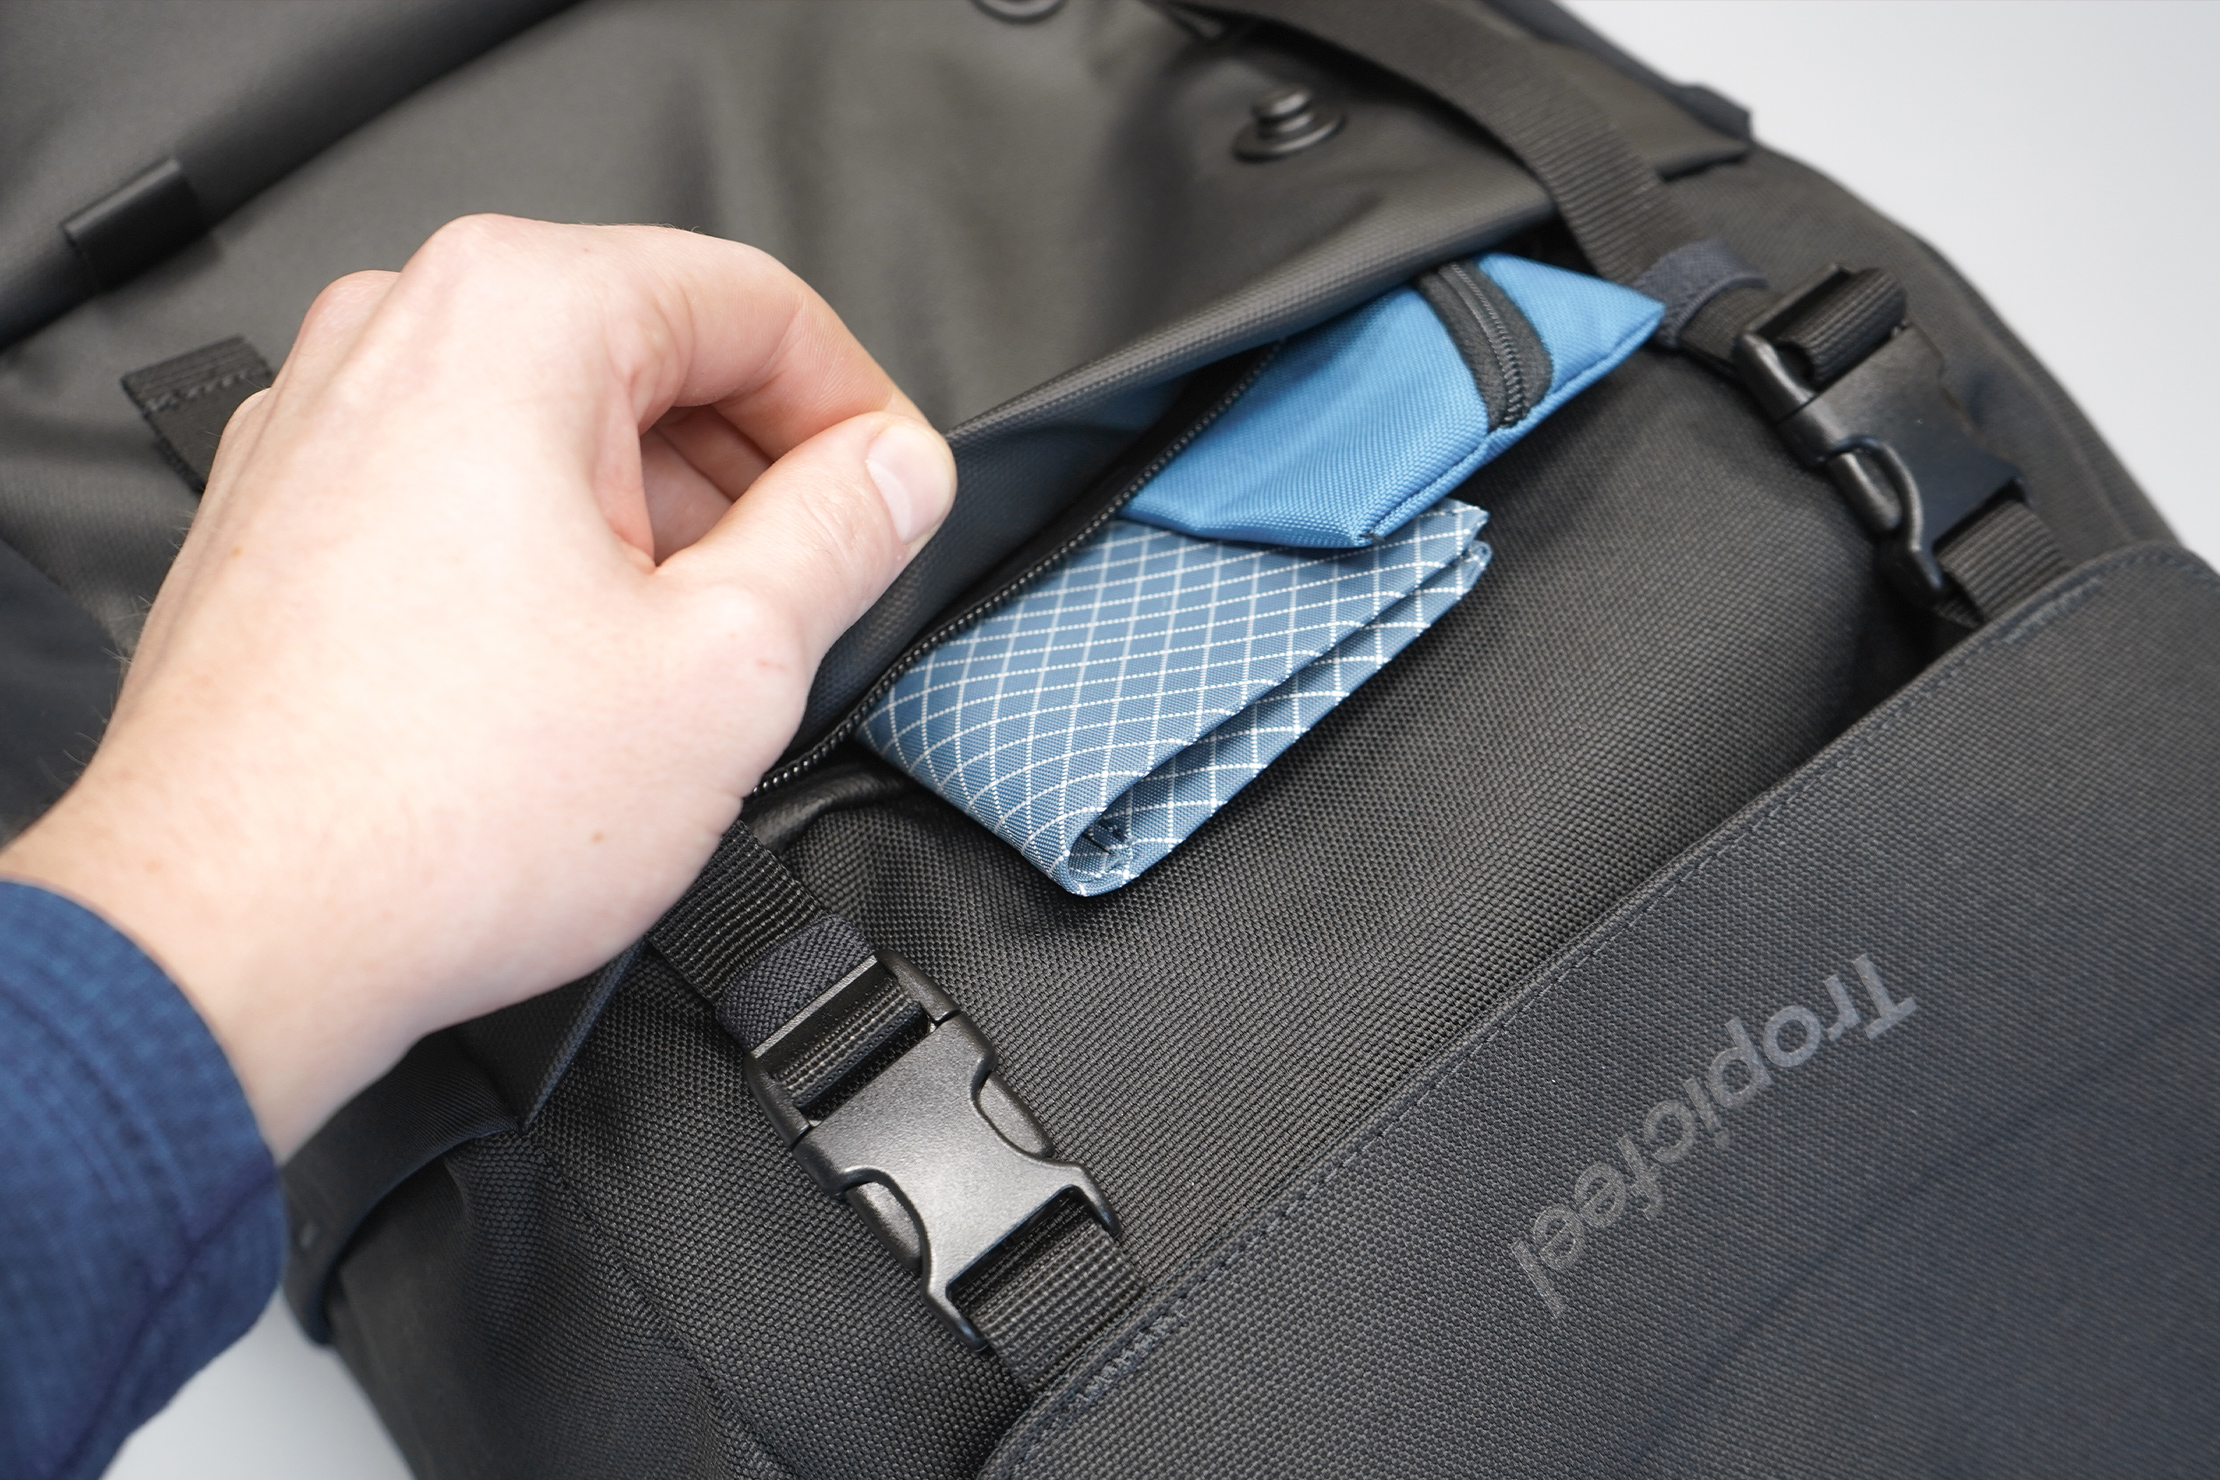 Tropicfeel Shell Travel Backpack | The shrouded front pocket is a nice security feature